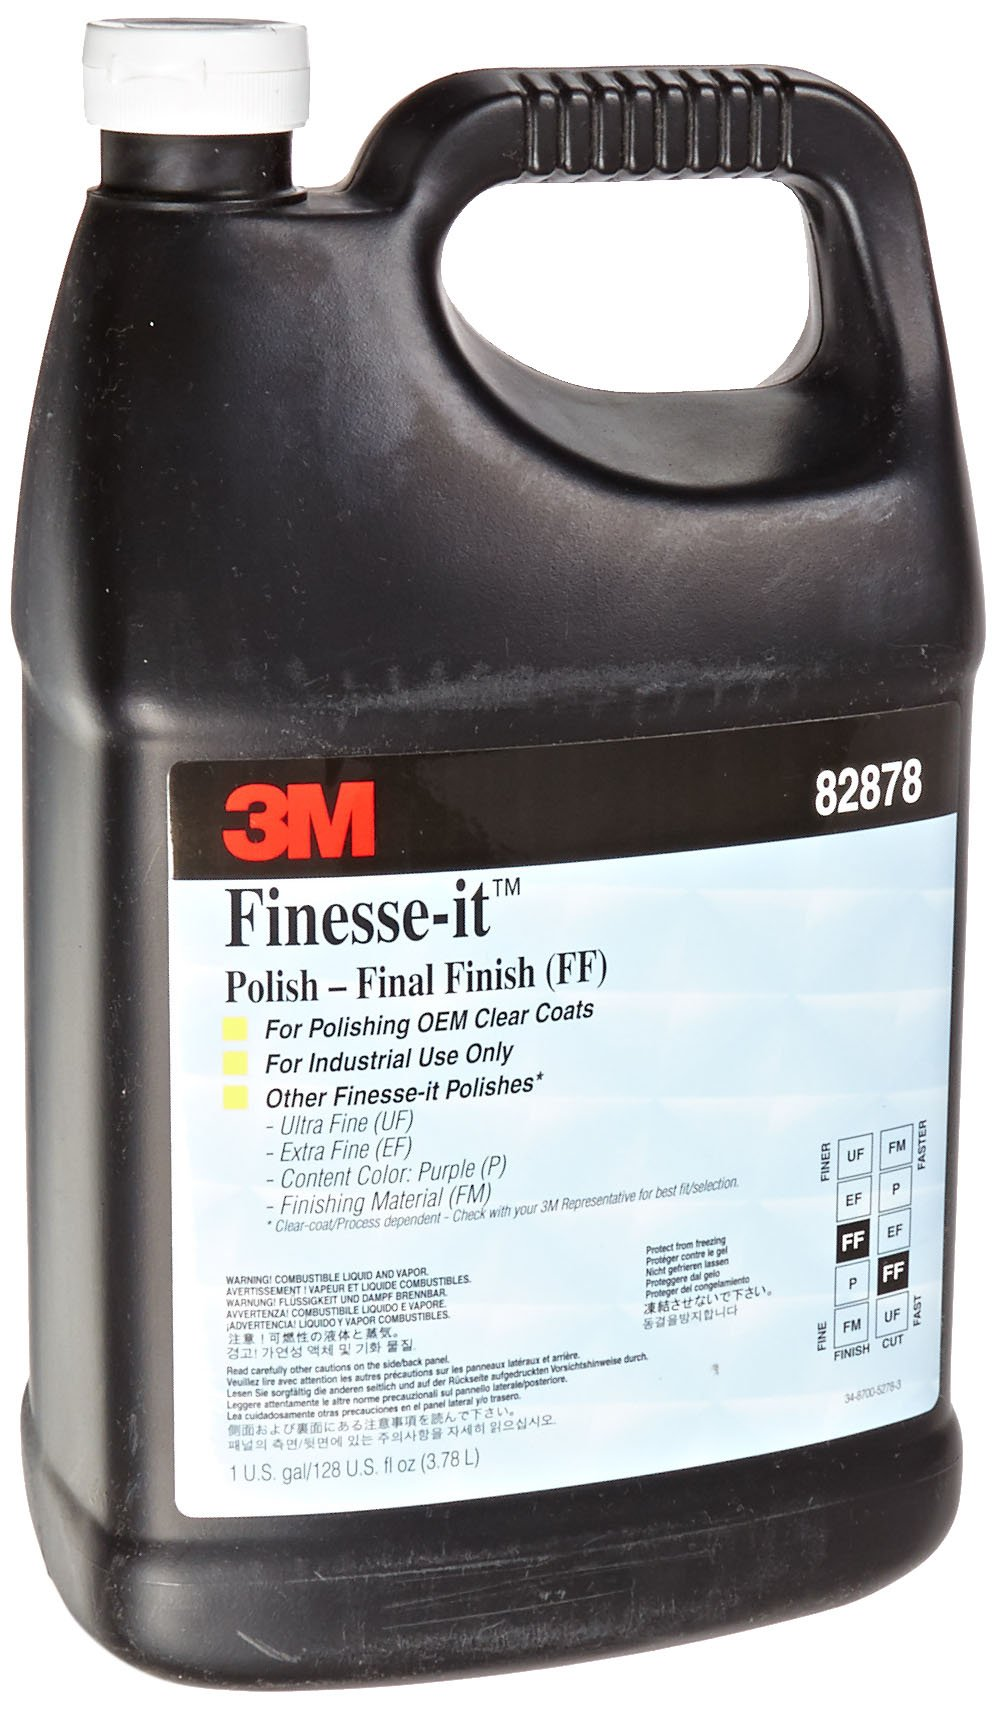 3M Finesse-it Final Finish 82878 Gray, 1 Gallon Can (Pack of 1)